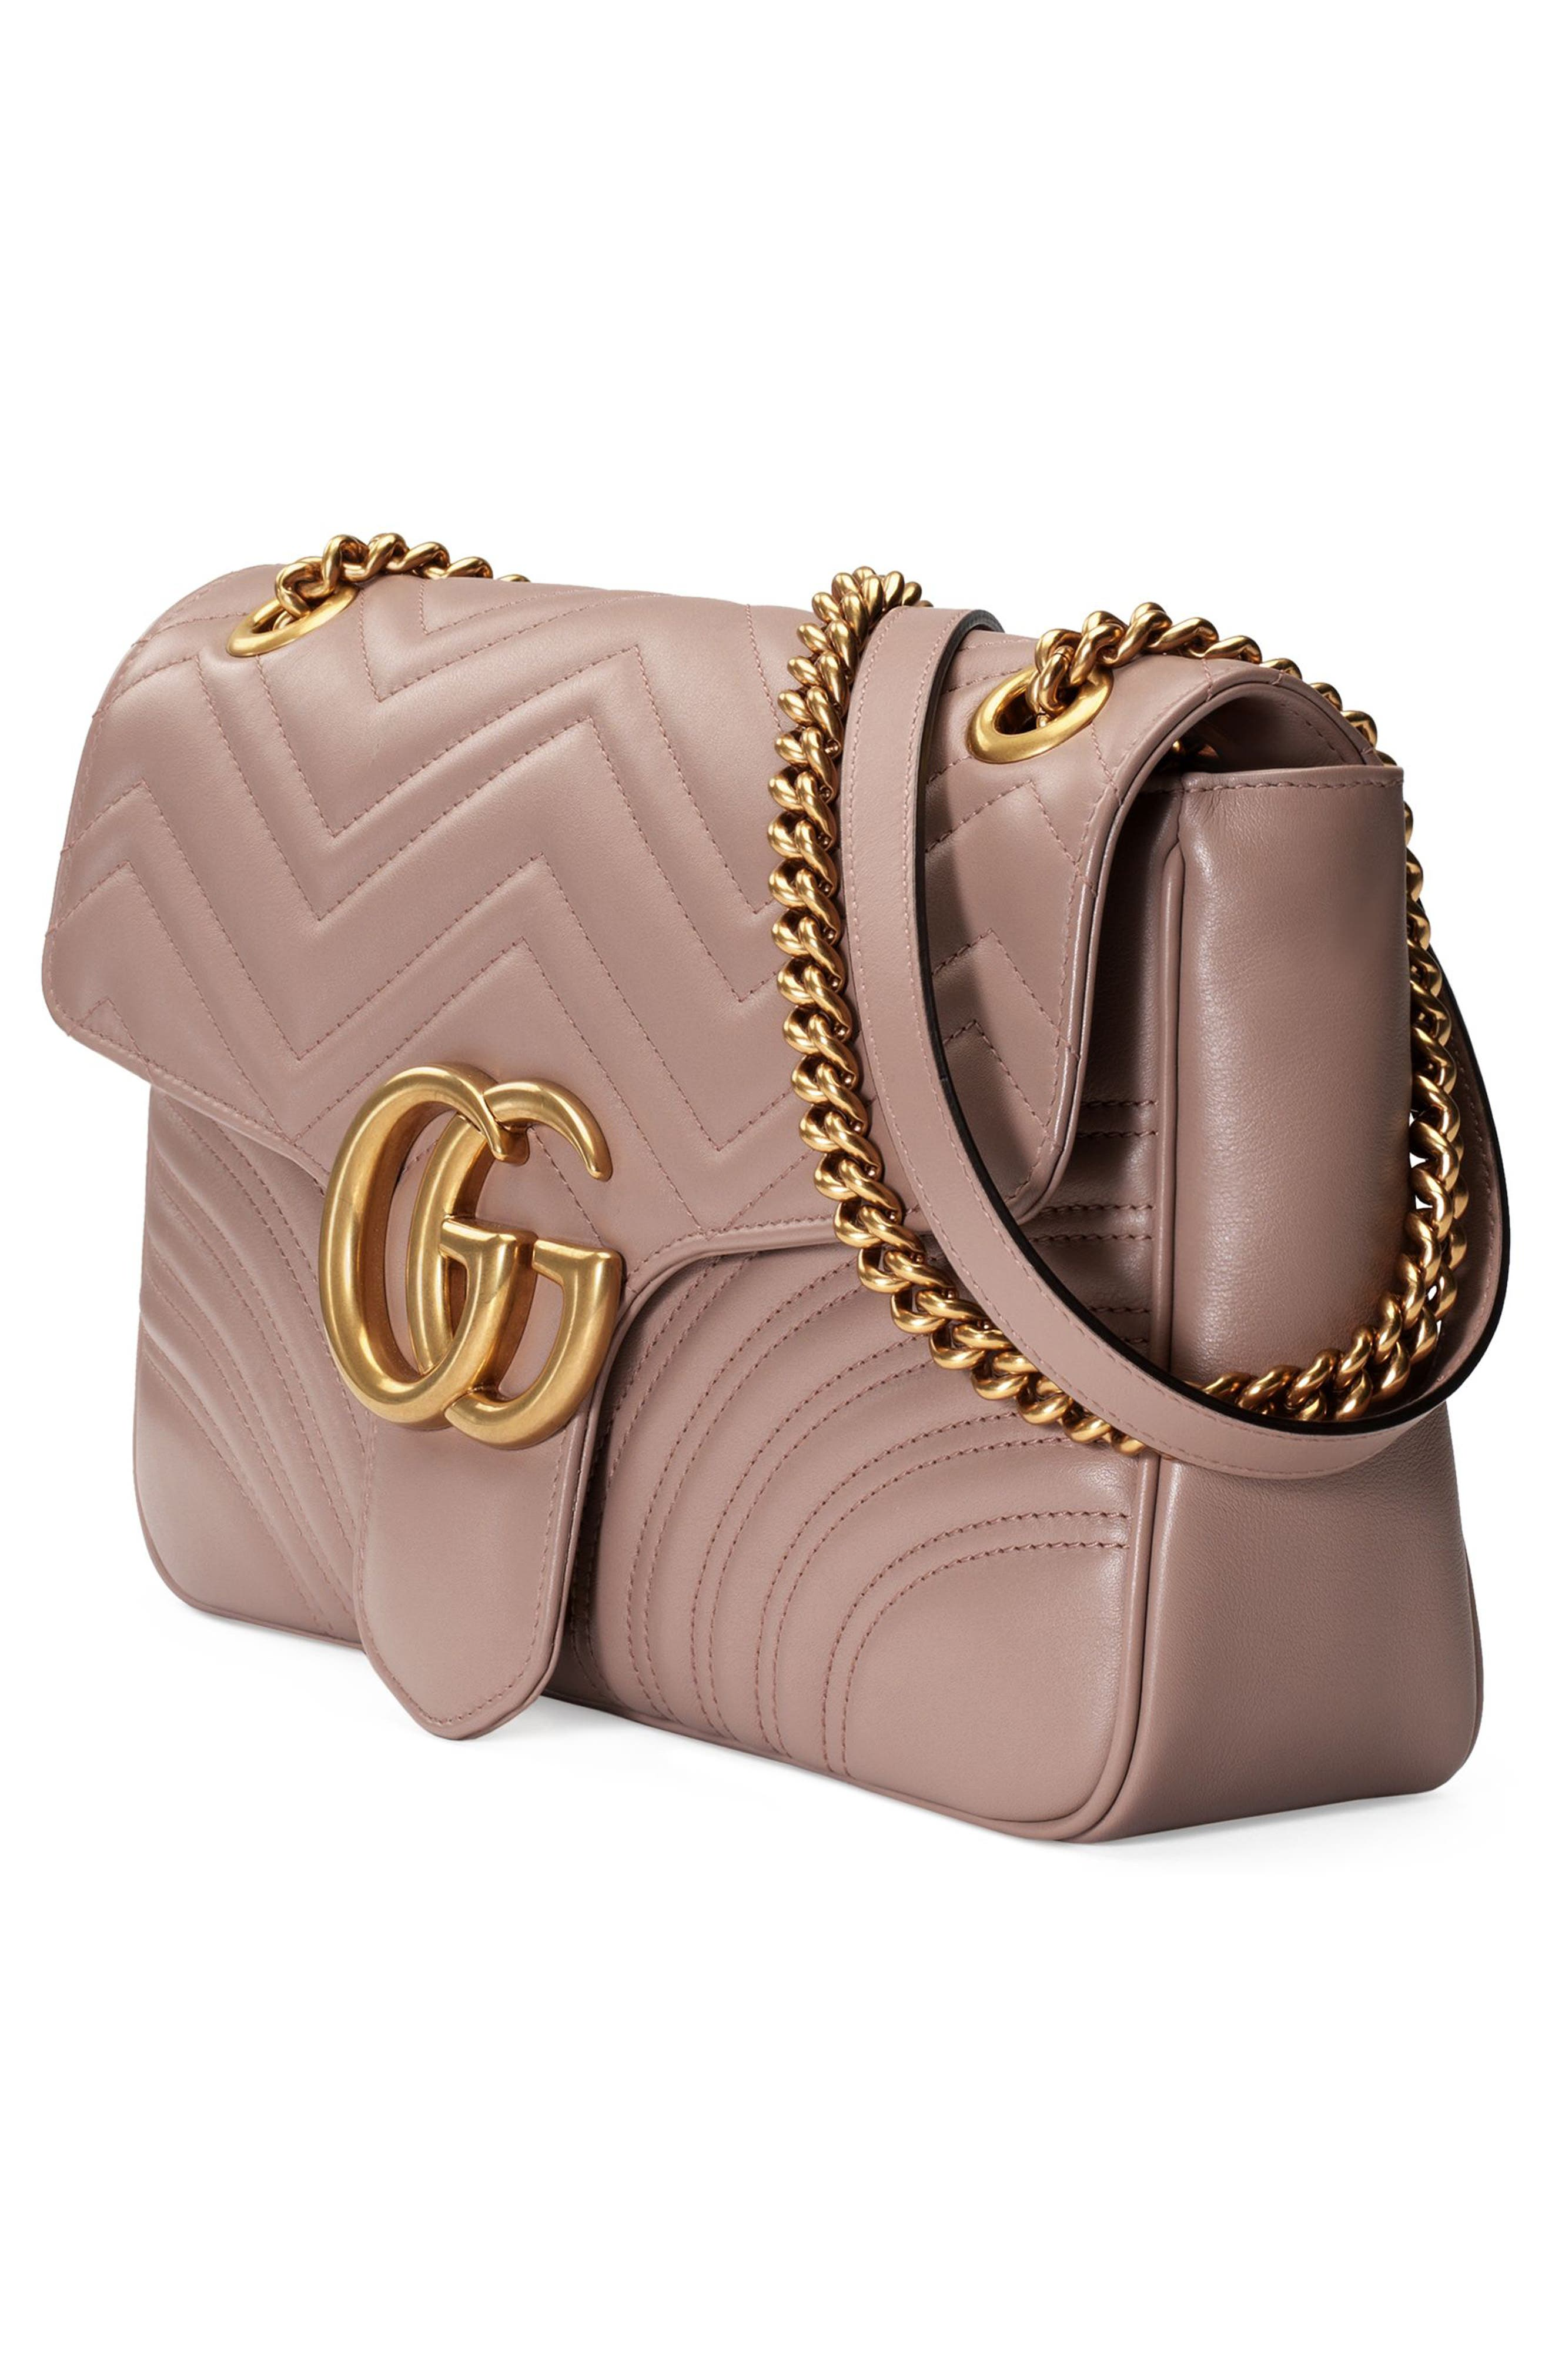 Medium GG Marmont 2.0 Matelassé Leather Shoulder Bag,                             Alternate thumbnail 4, color,                             PORCELAIN ROSE/ PORCELAIN ROSE